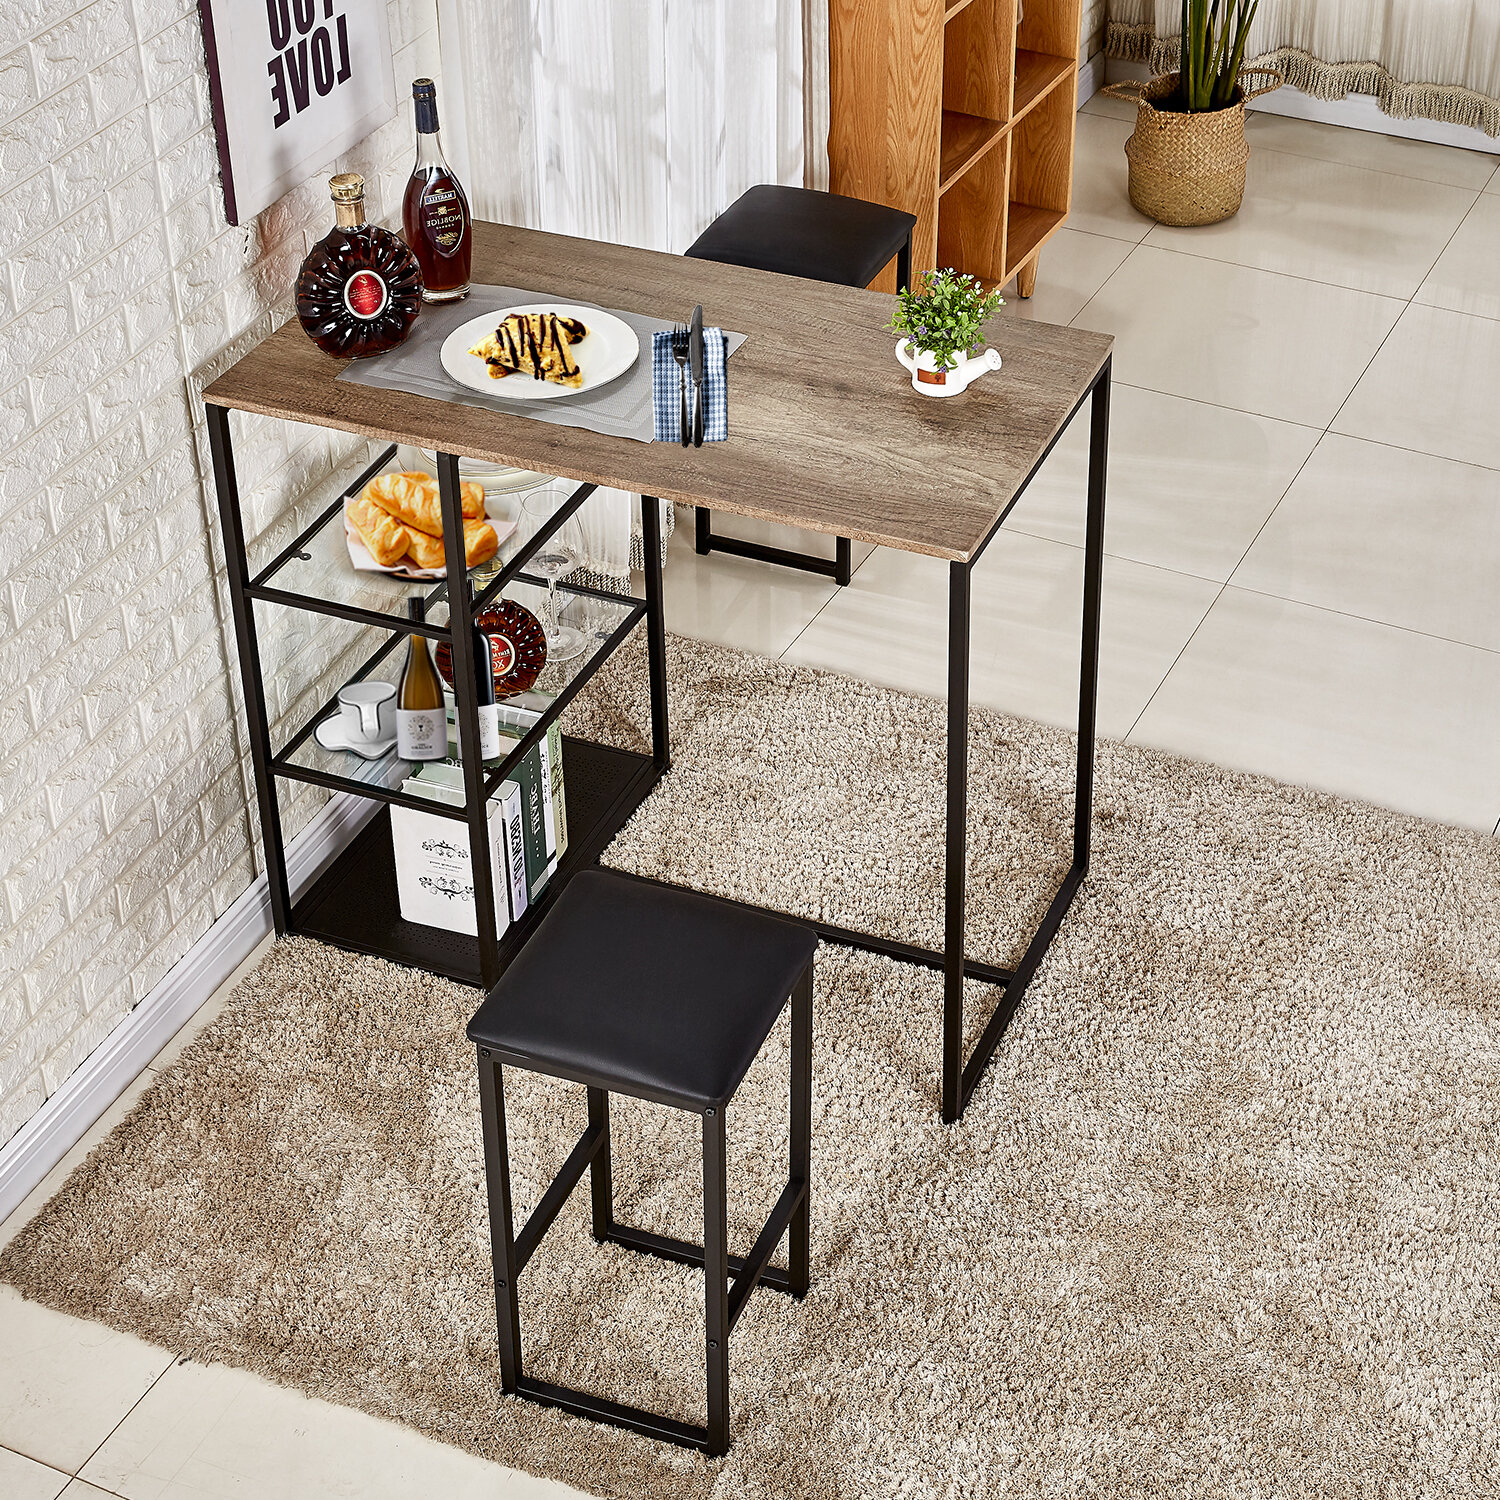 Ligon 3 Piece Breakfast Nook Dining Set Within Best And Newest Lillard 3 Piece Breakfast Nook Dining Sets (View 2 of 20)